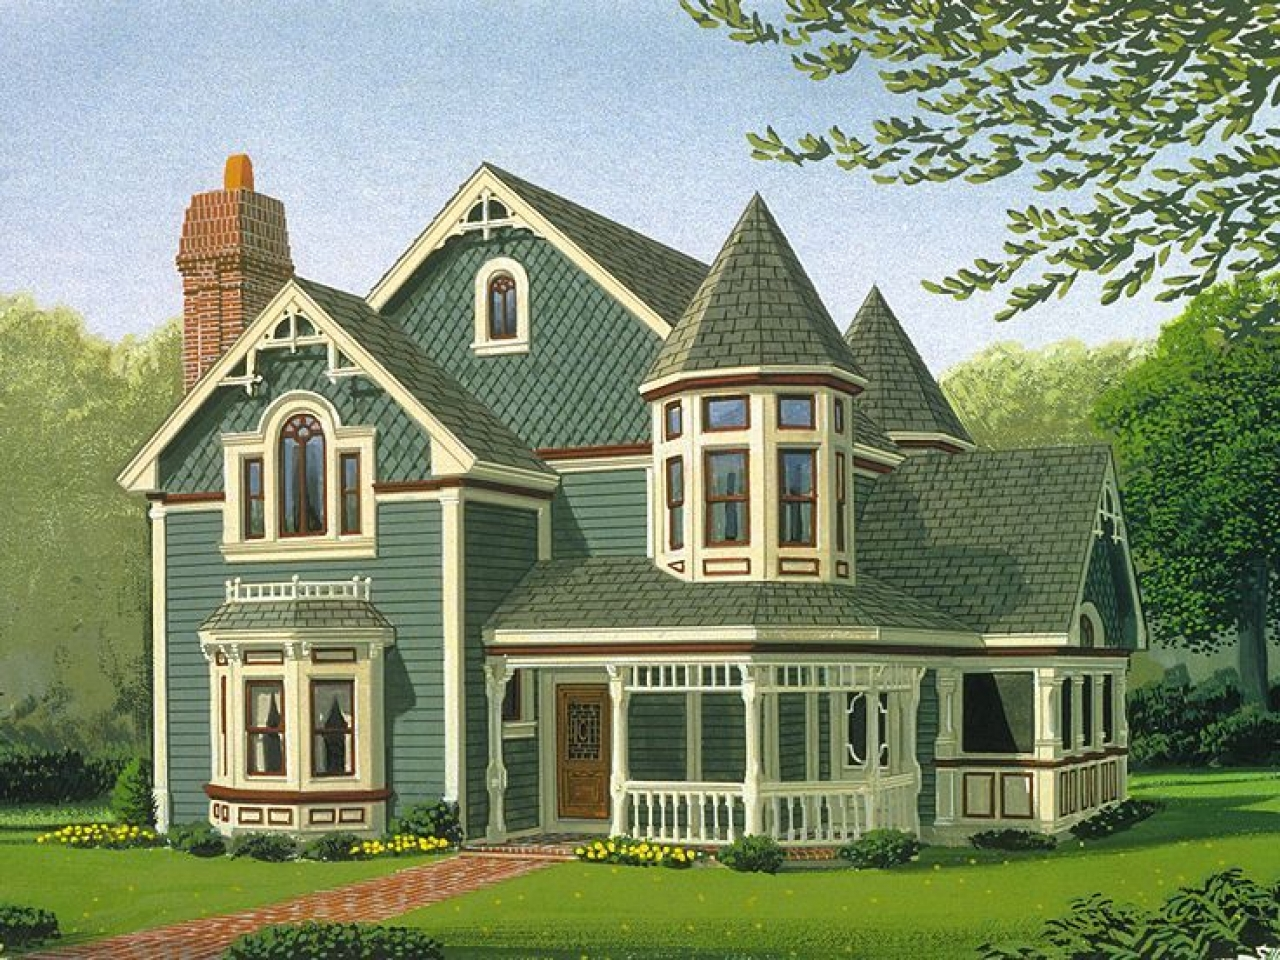 Victorian house plans authentic victorian house plans for Victorian birdhouse plans free